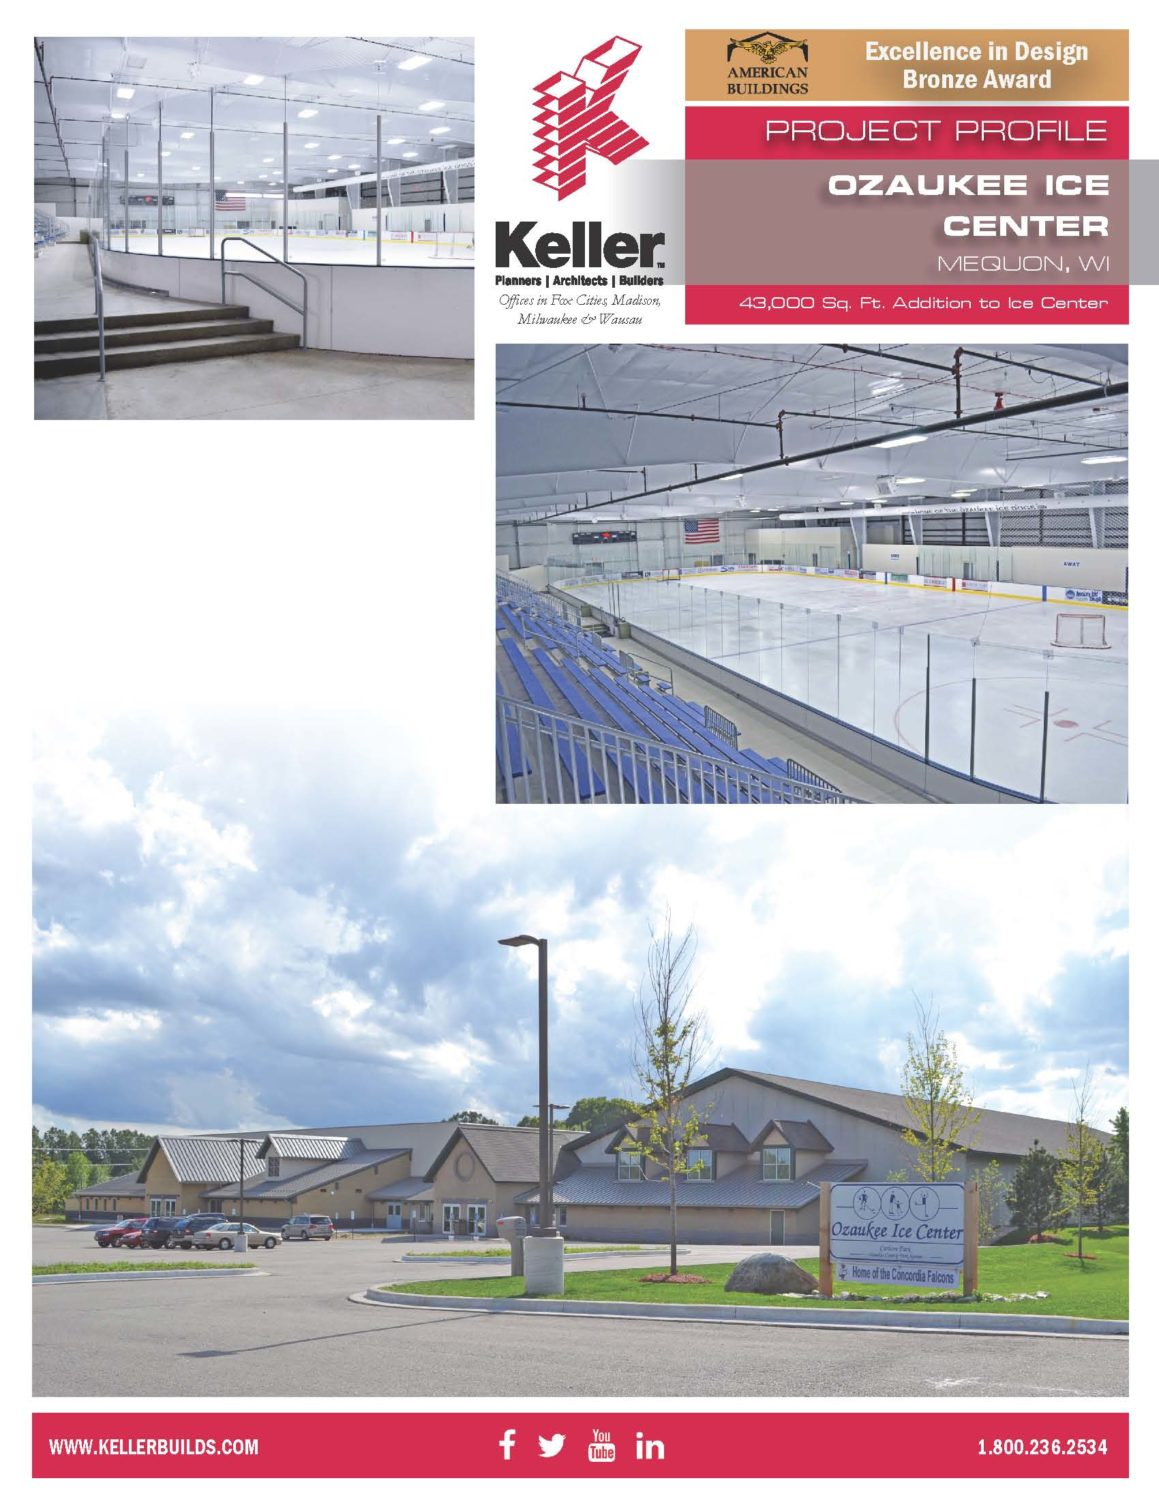 Ozaukee Ice Center